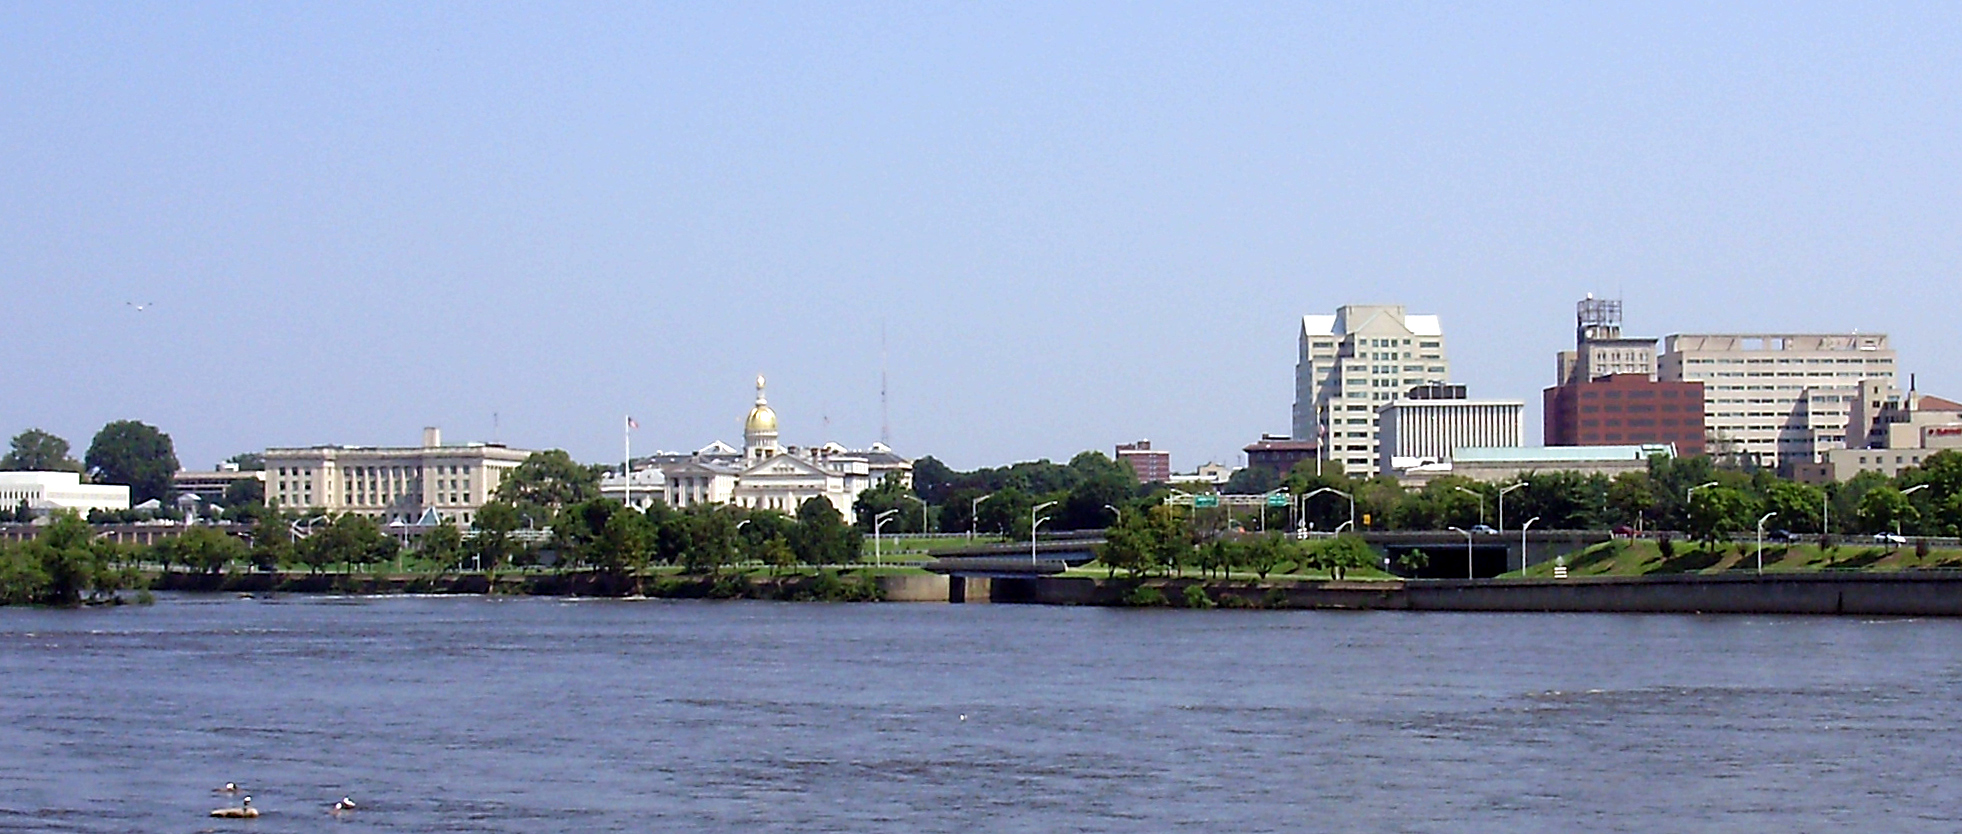 Trenton New Jersey Wikipedia